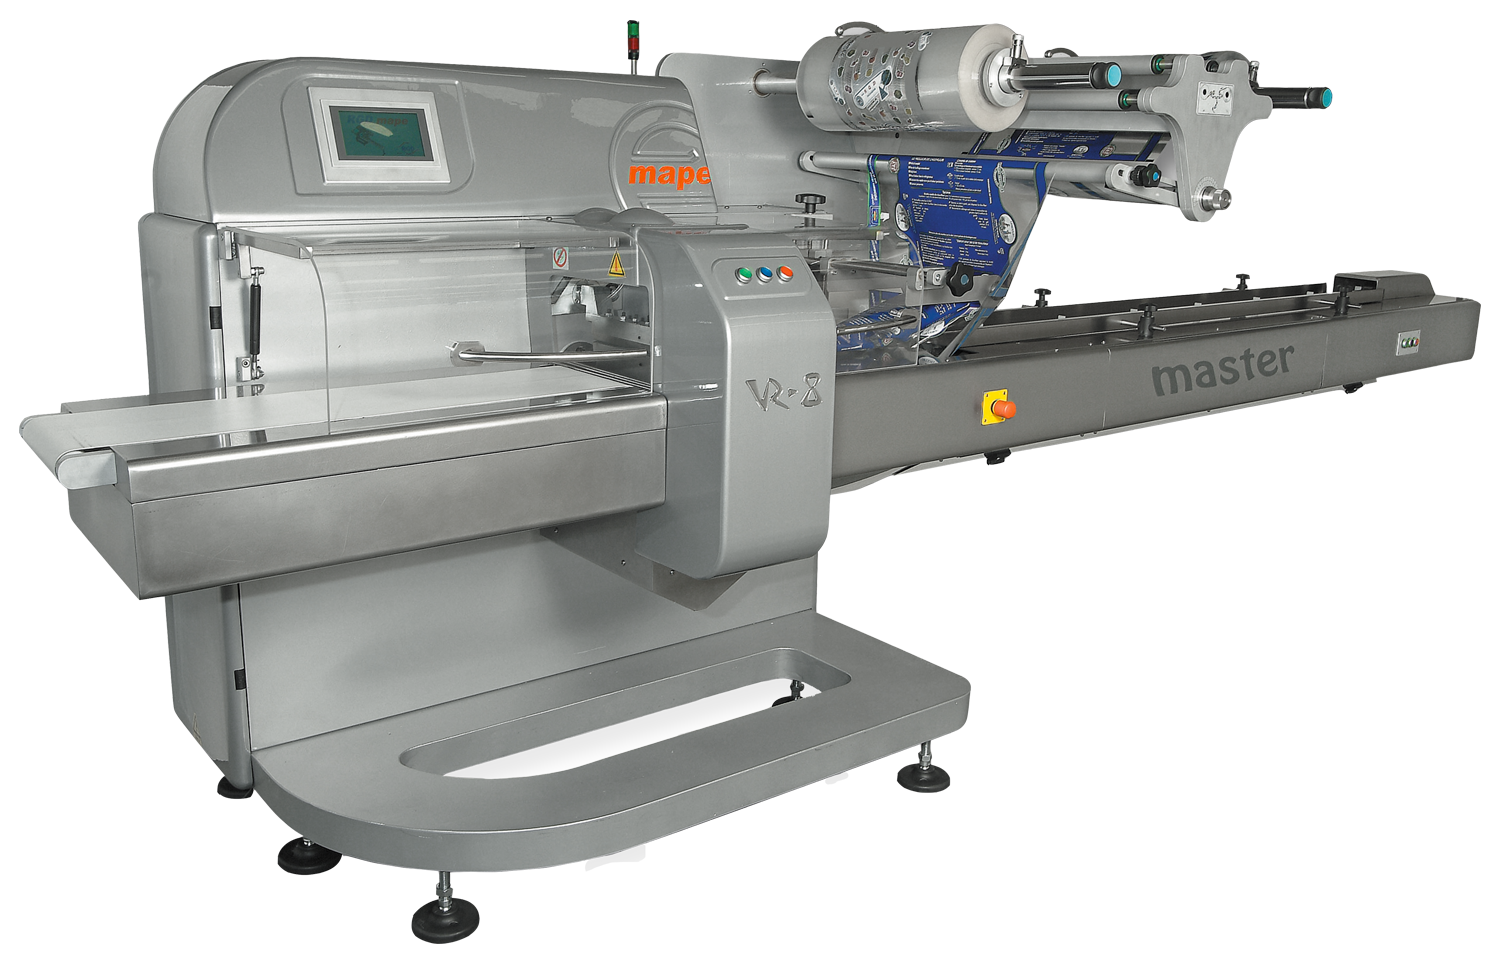 RGD Mape VR-8 Master Flow Wrap Machine with a roll of loaded heat seal lidding film.